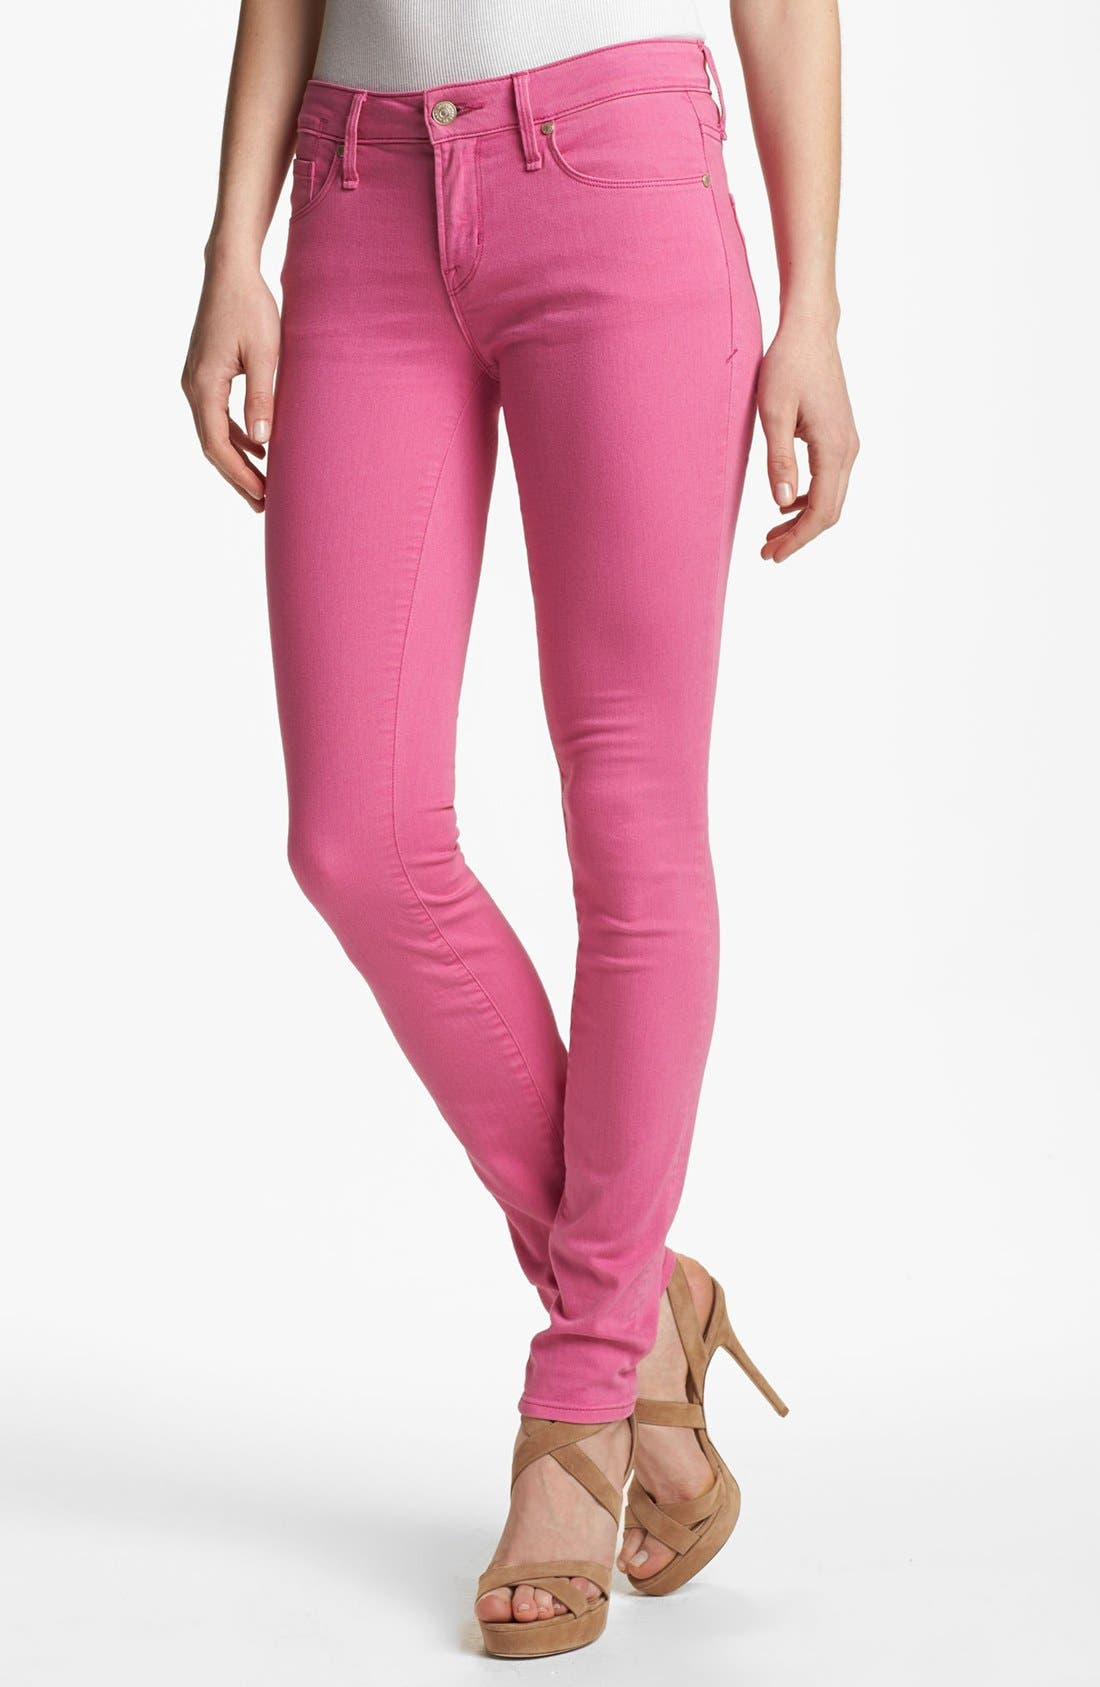 Alternate Image 1 Selected - MARC BY MARC JACOBS 'Gaia' Colored Super Skinny Stretch Jeans (Magenta Petal)